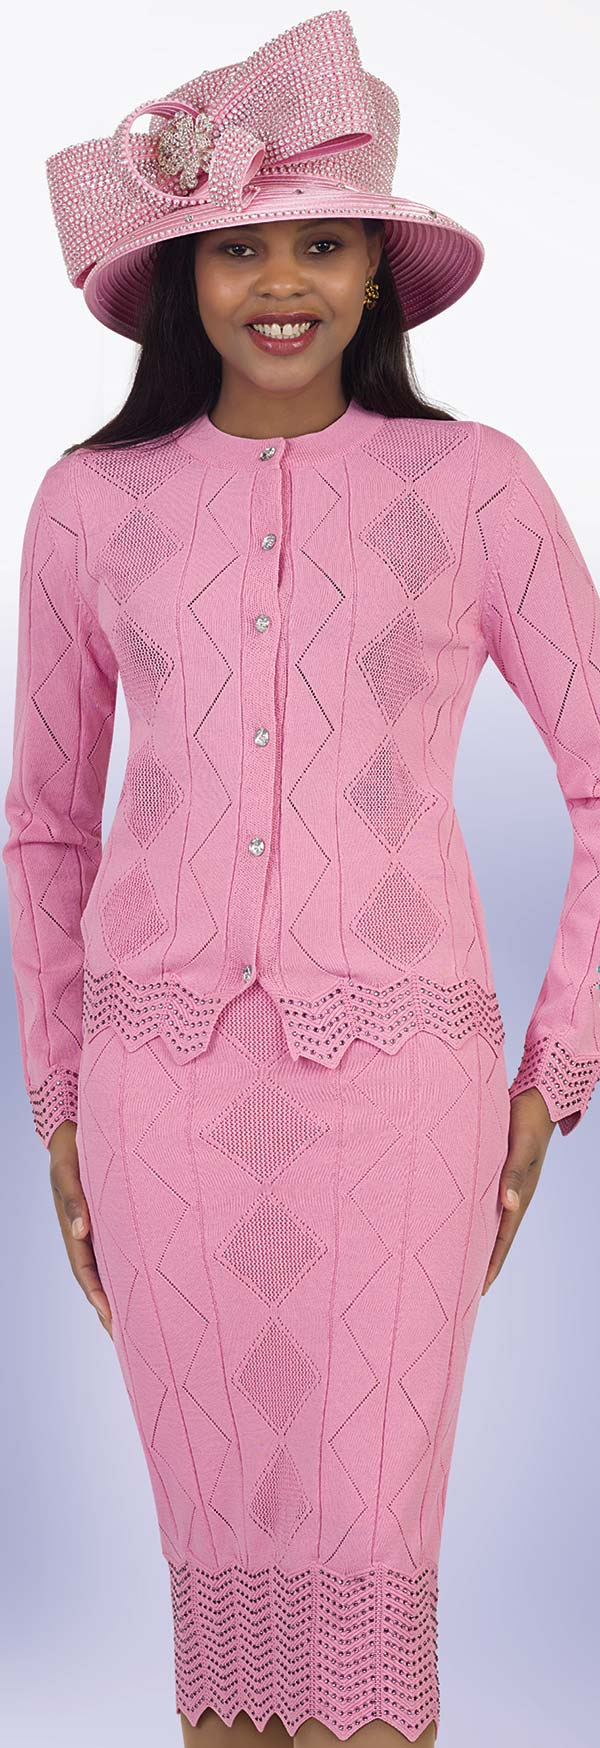 Lily and Taylor 674 - Embellished Knit Fabric Skirt Suit With Diamond Pattern Design